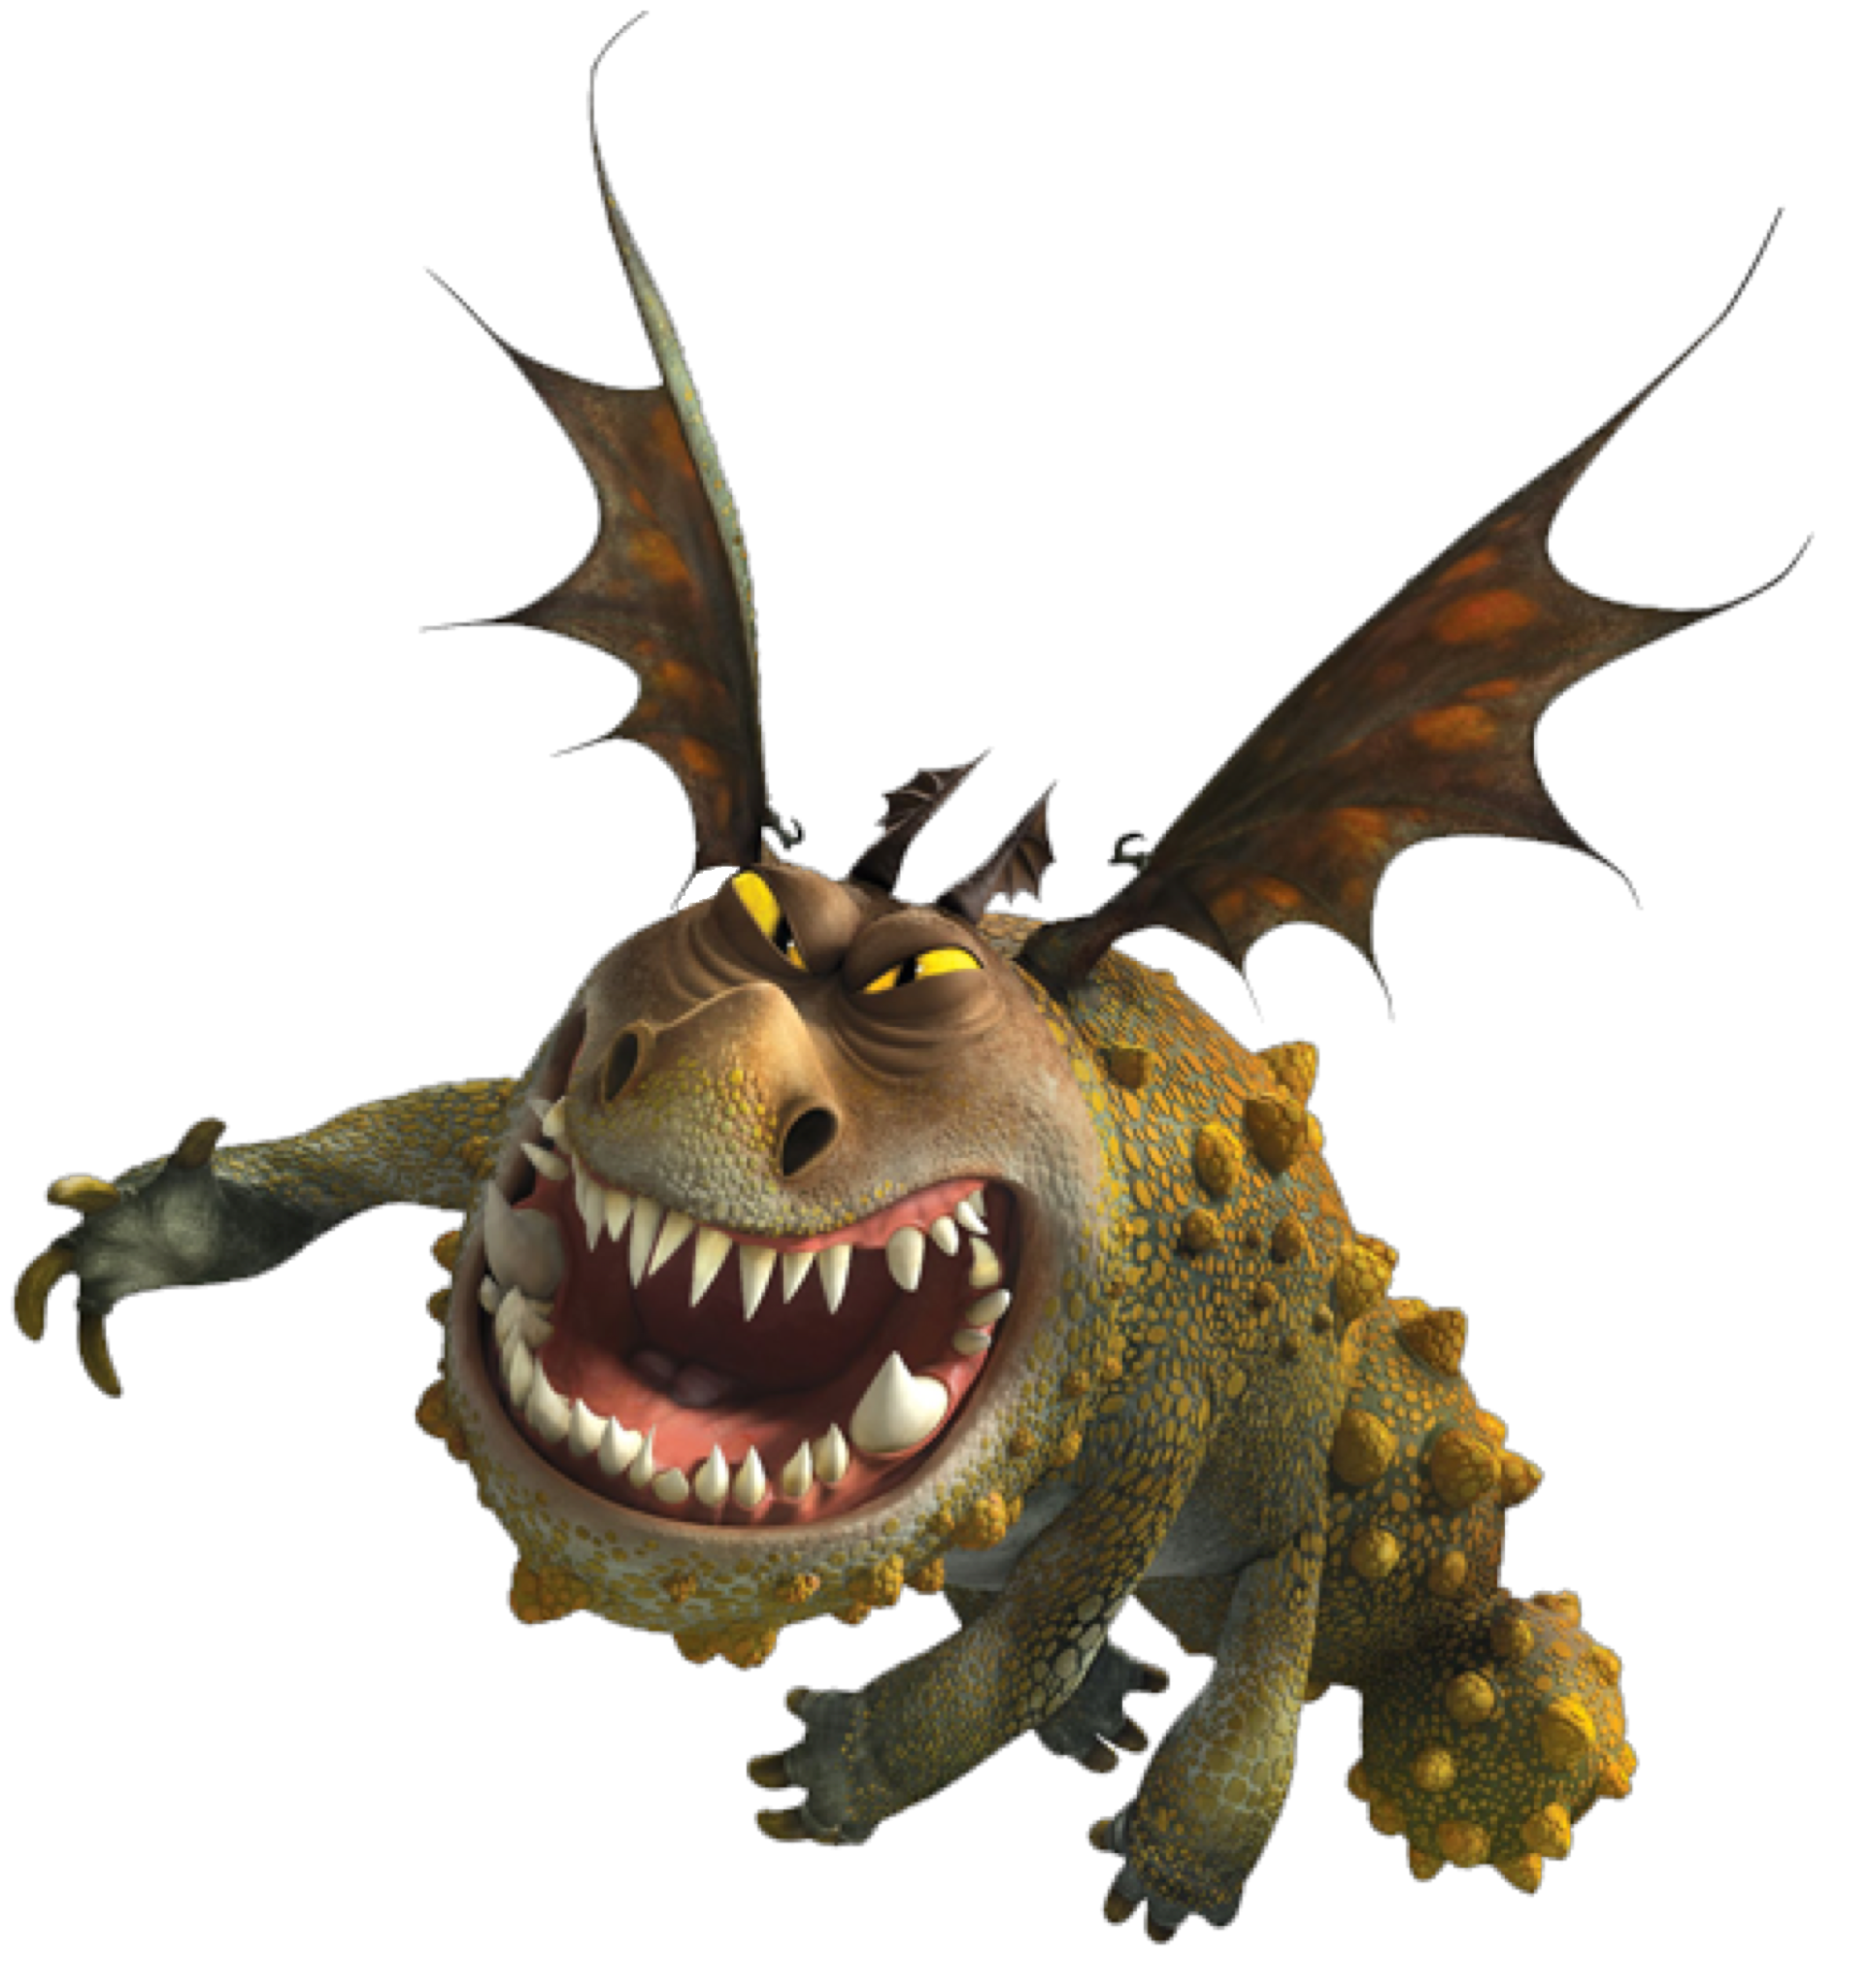 Gronckle franchise how to train your dragon wiki fandom powered by wikia - Image de dragon ...